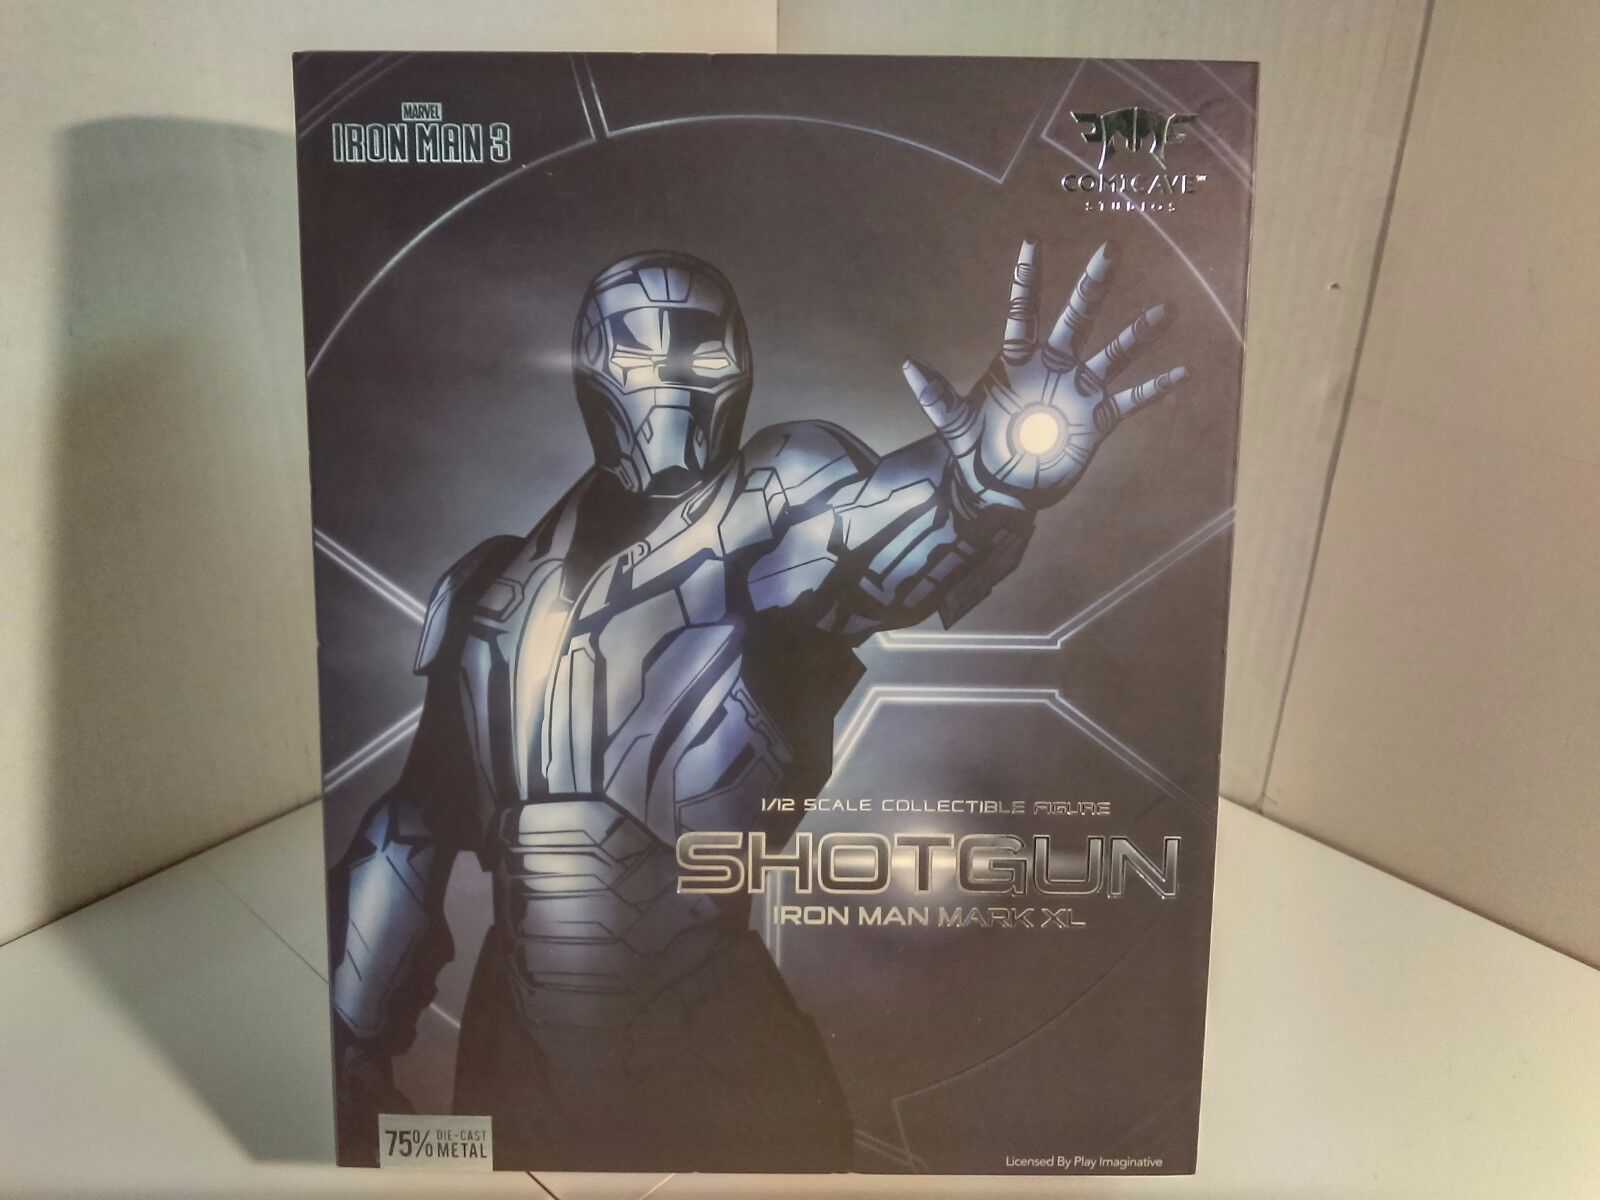 Shotgun Iron Man Mark XL 1 12 Scale Collectible Figure - Comicave Studios (2016)